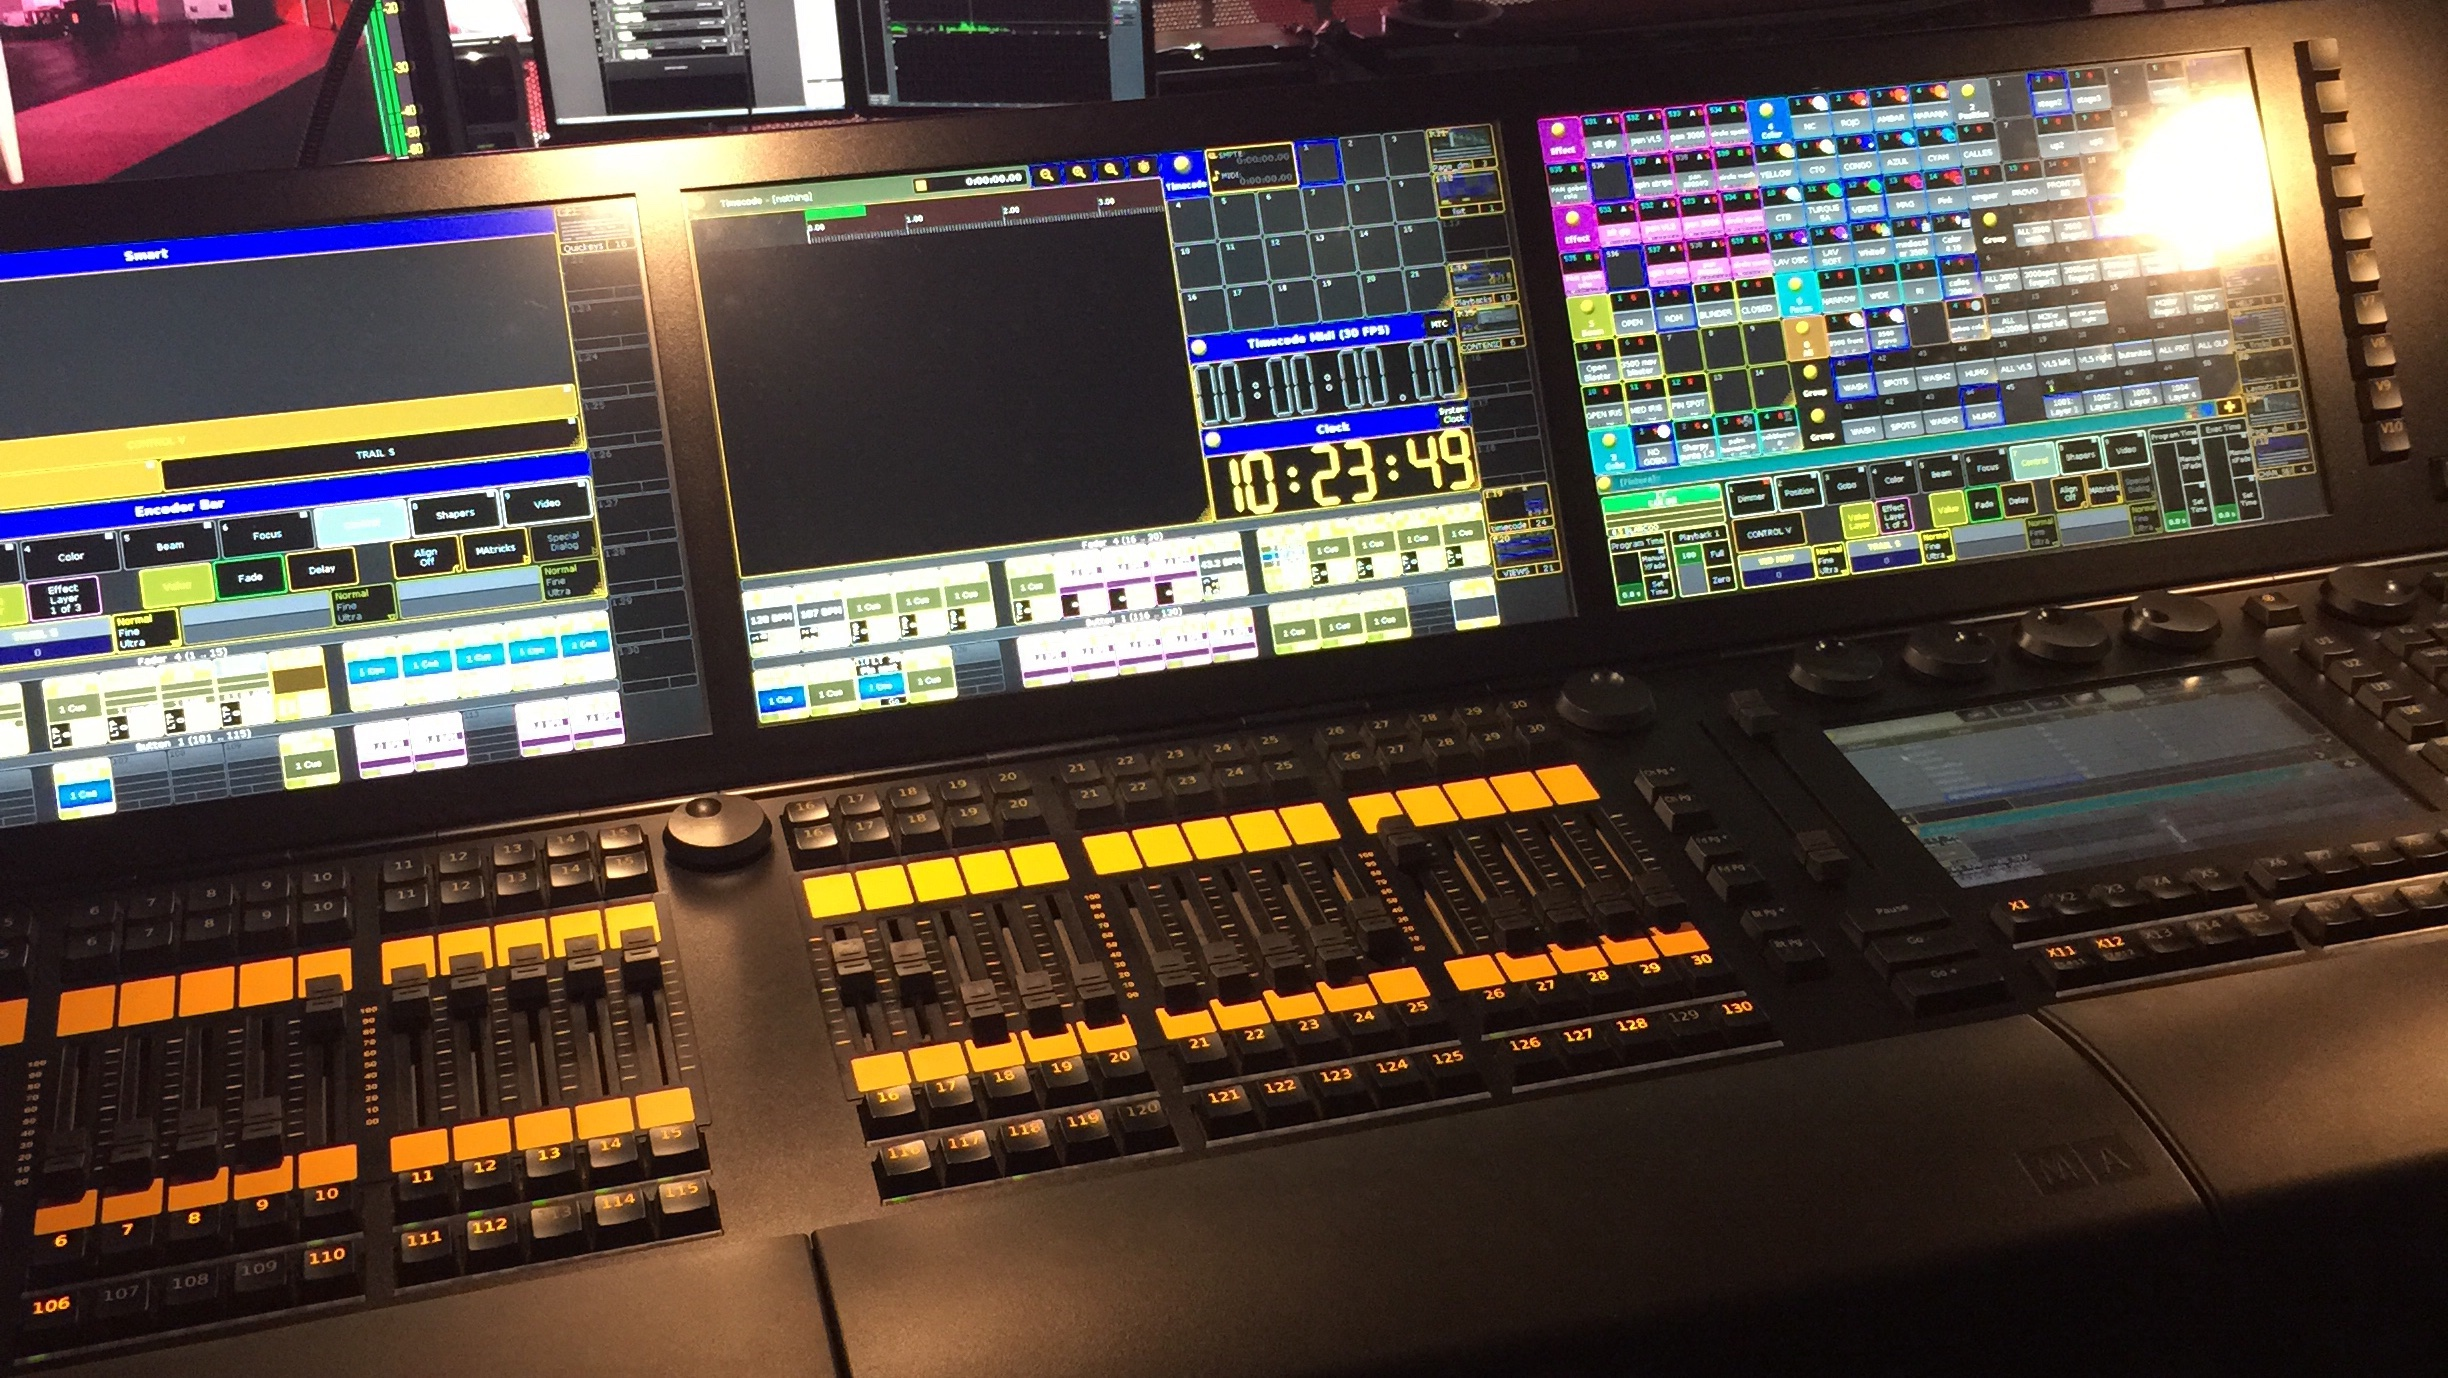 The console, in Spanish, I have to get my head around for the show...